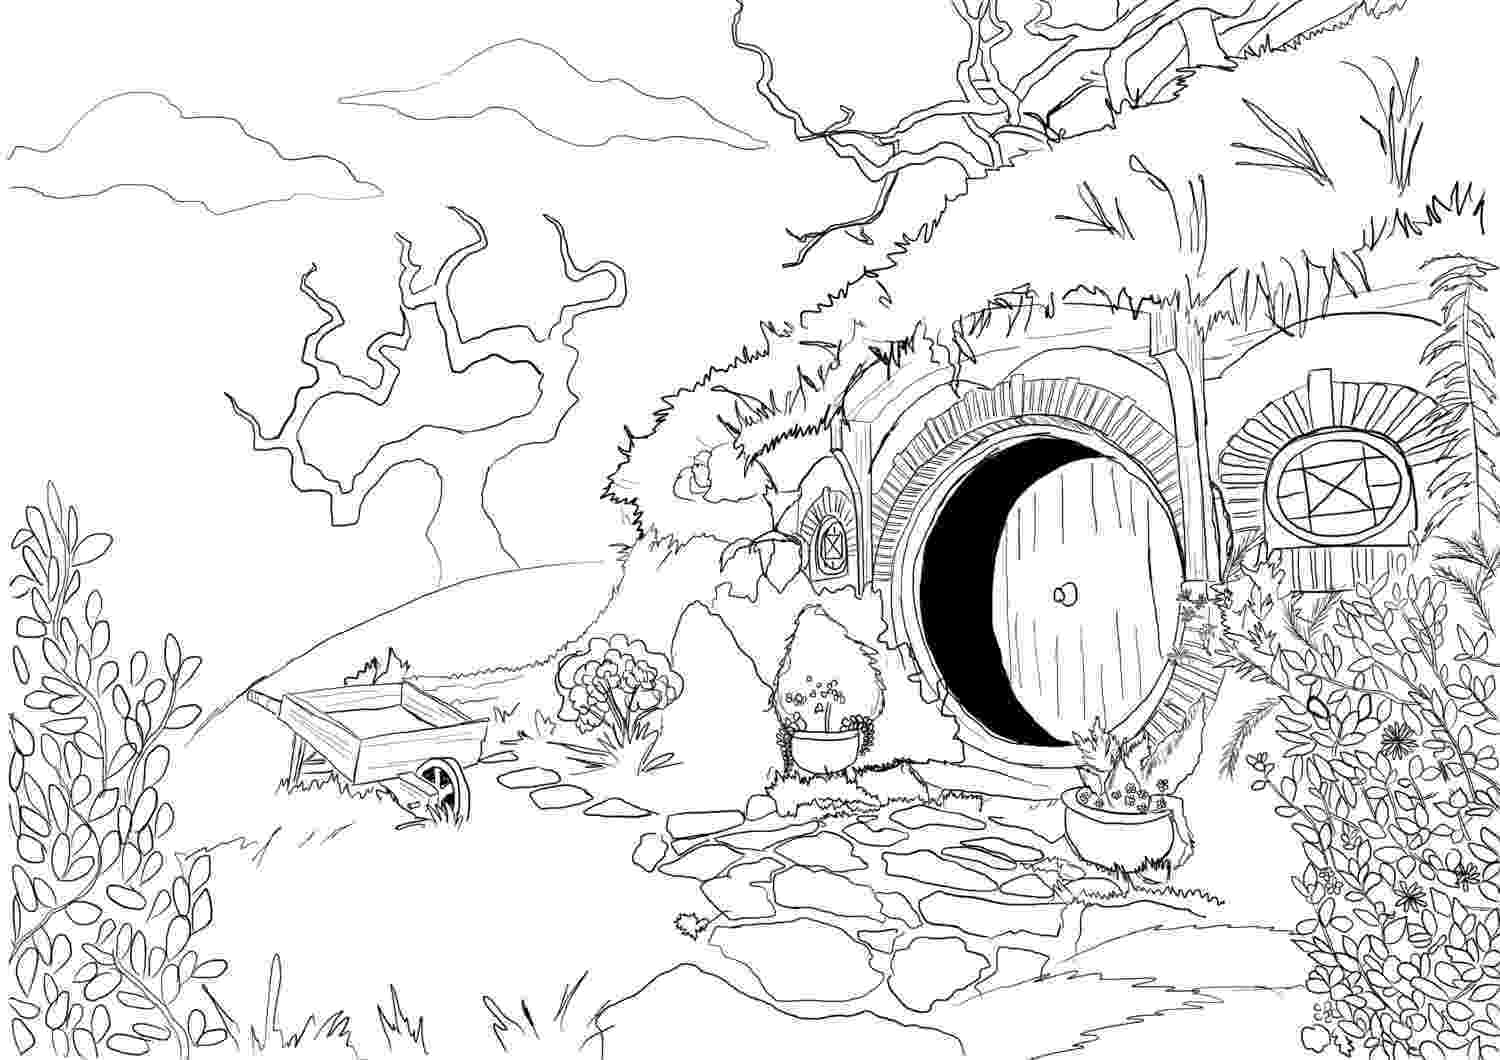 hobbit coloring pages adult coloring page hobbit house from lord of the rings coloring hobbit pages